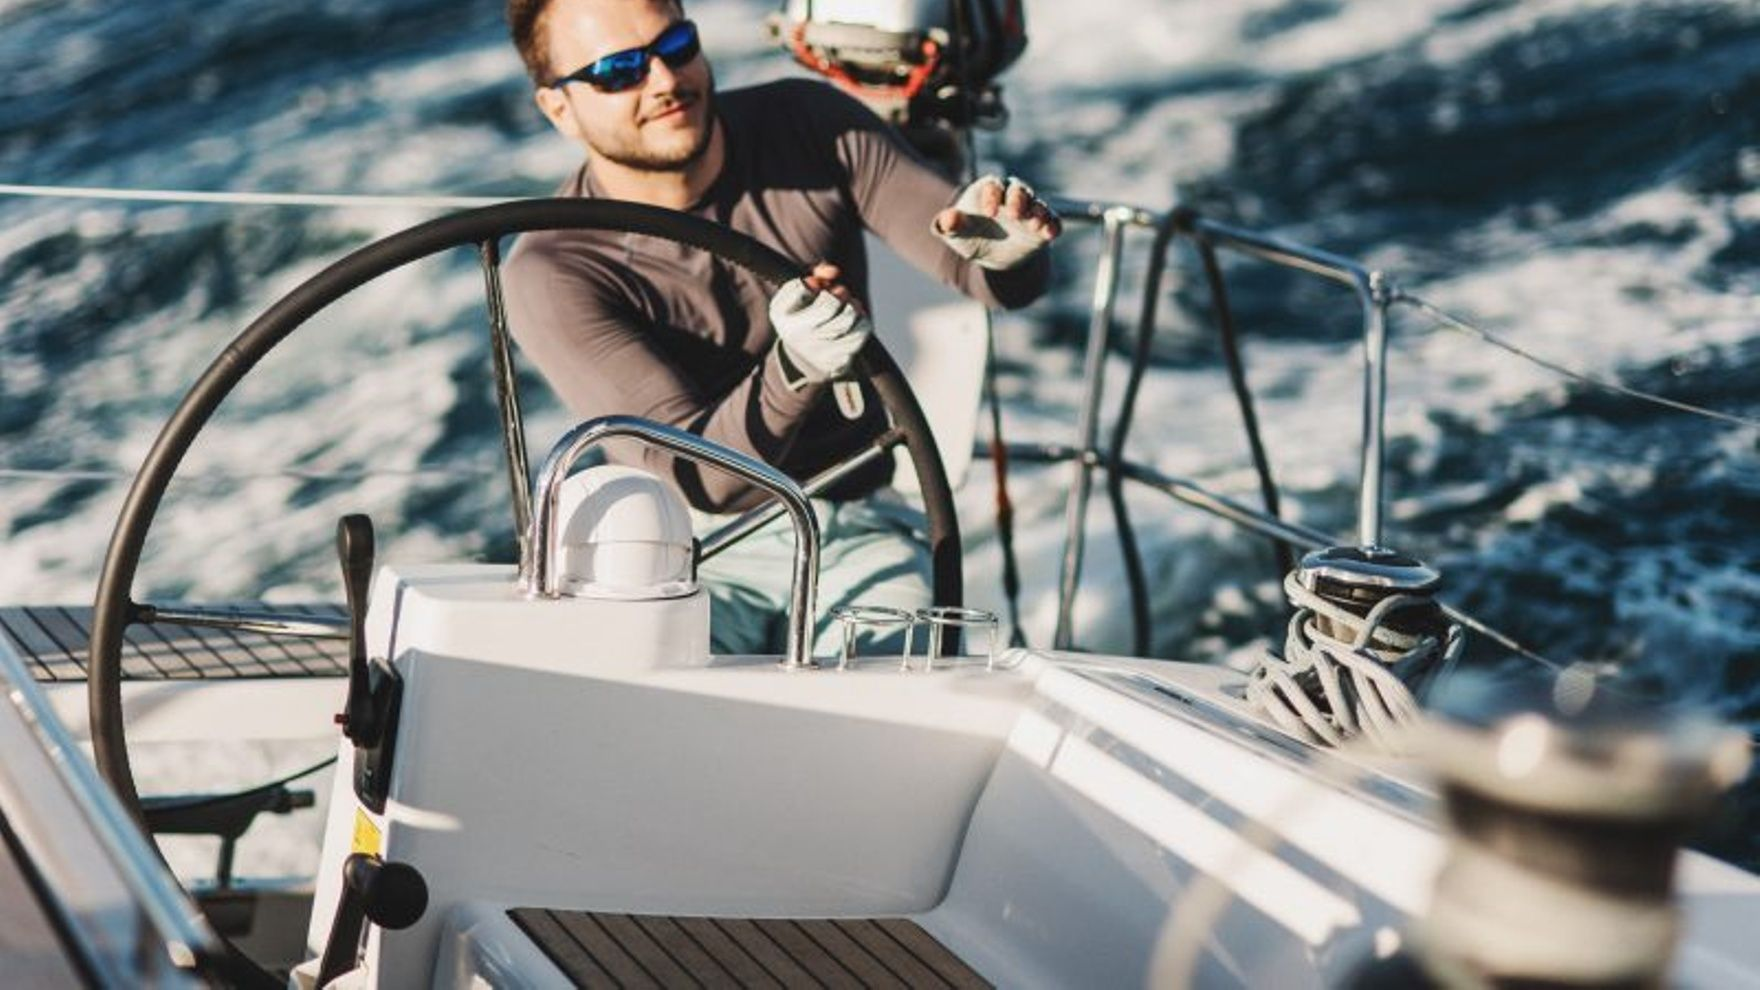 BAREBOAT SKIPPER TRAINING IN MANAGING A SAILING YACHT: Ibiza — Montenegro